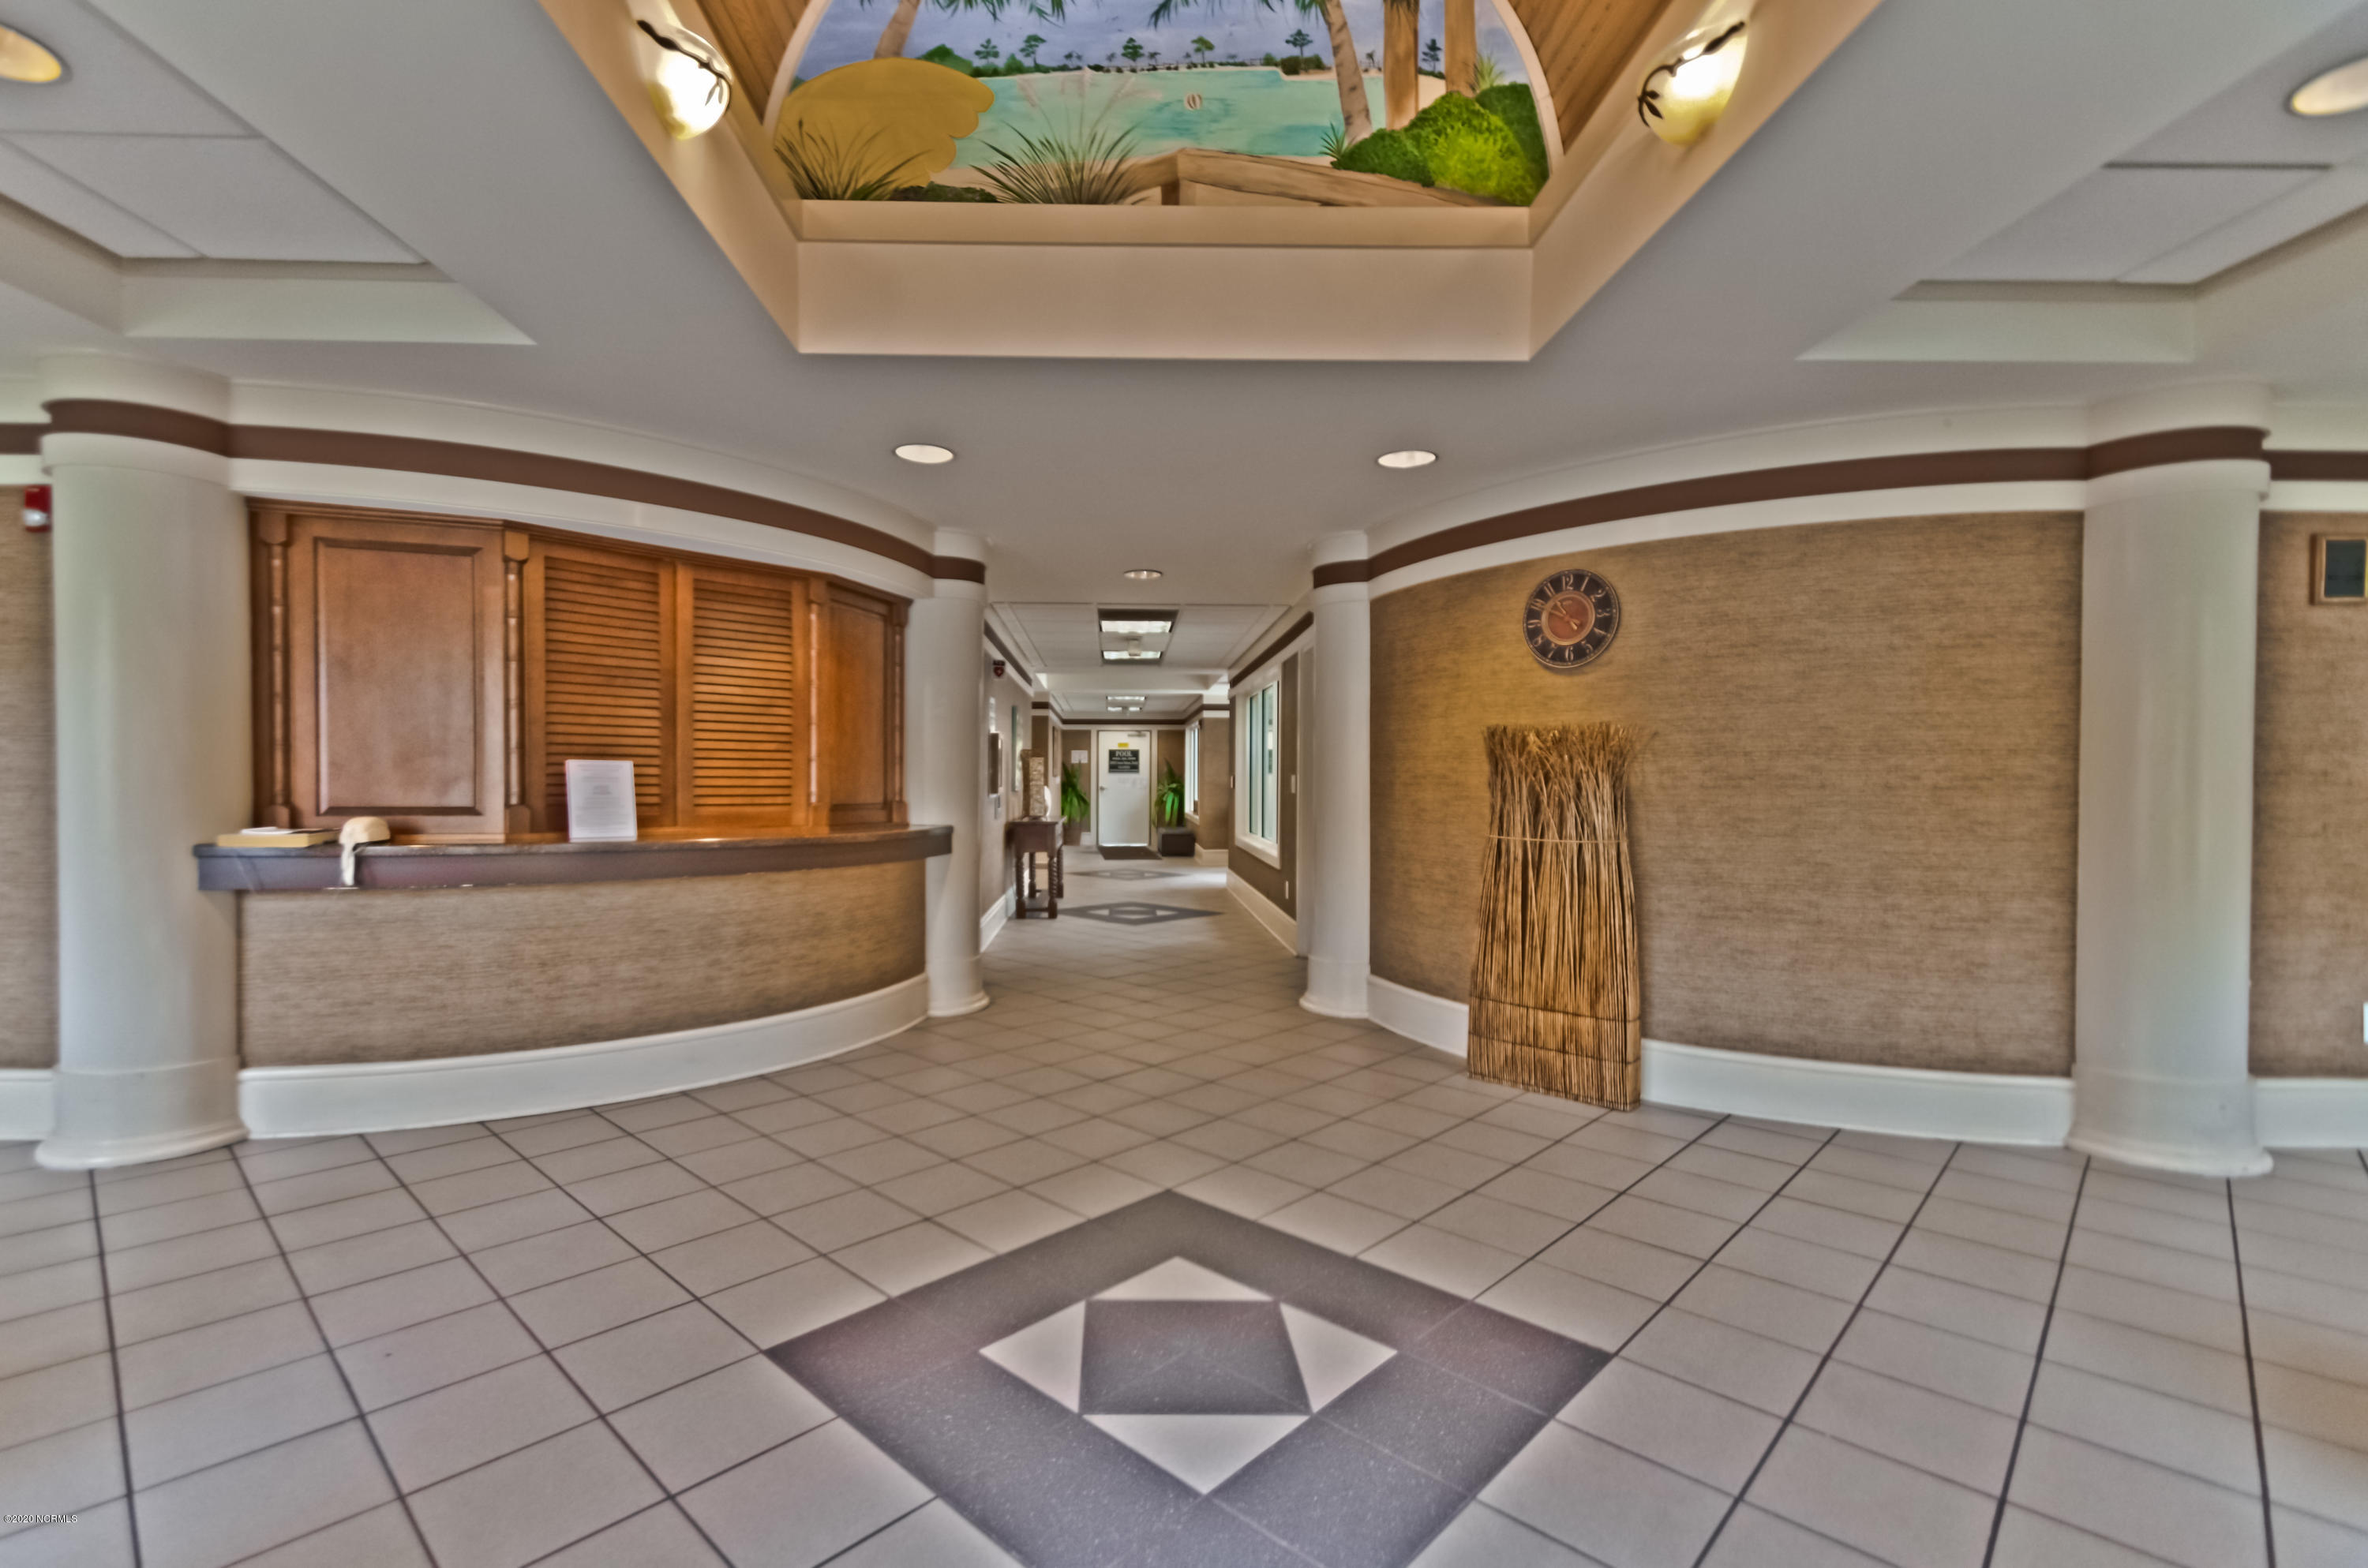 6587 Annesbrook Place, Ocean Isle Beach, North Carolina 28469, 4 Bedrooms Bedrooms, 11 Rooms Rooms,5 BathroomsBathrooms,Single family residence,For sale,Annesbrook,100209096